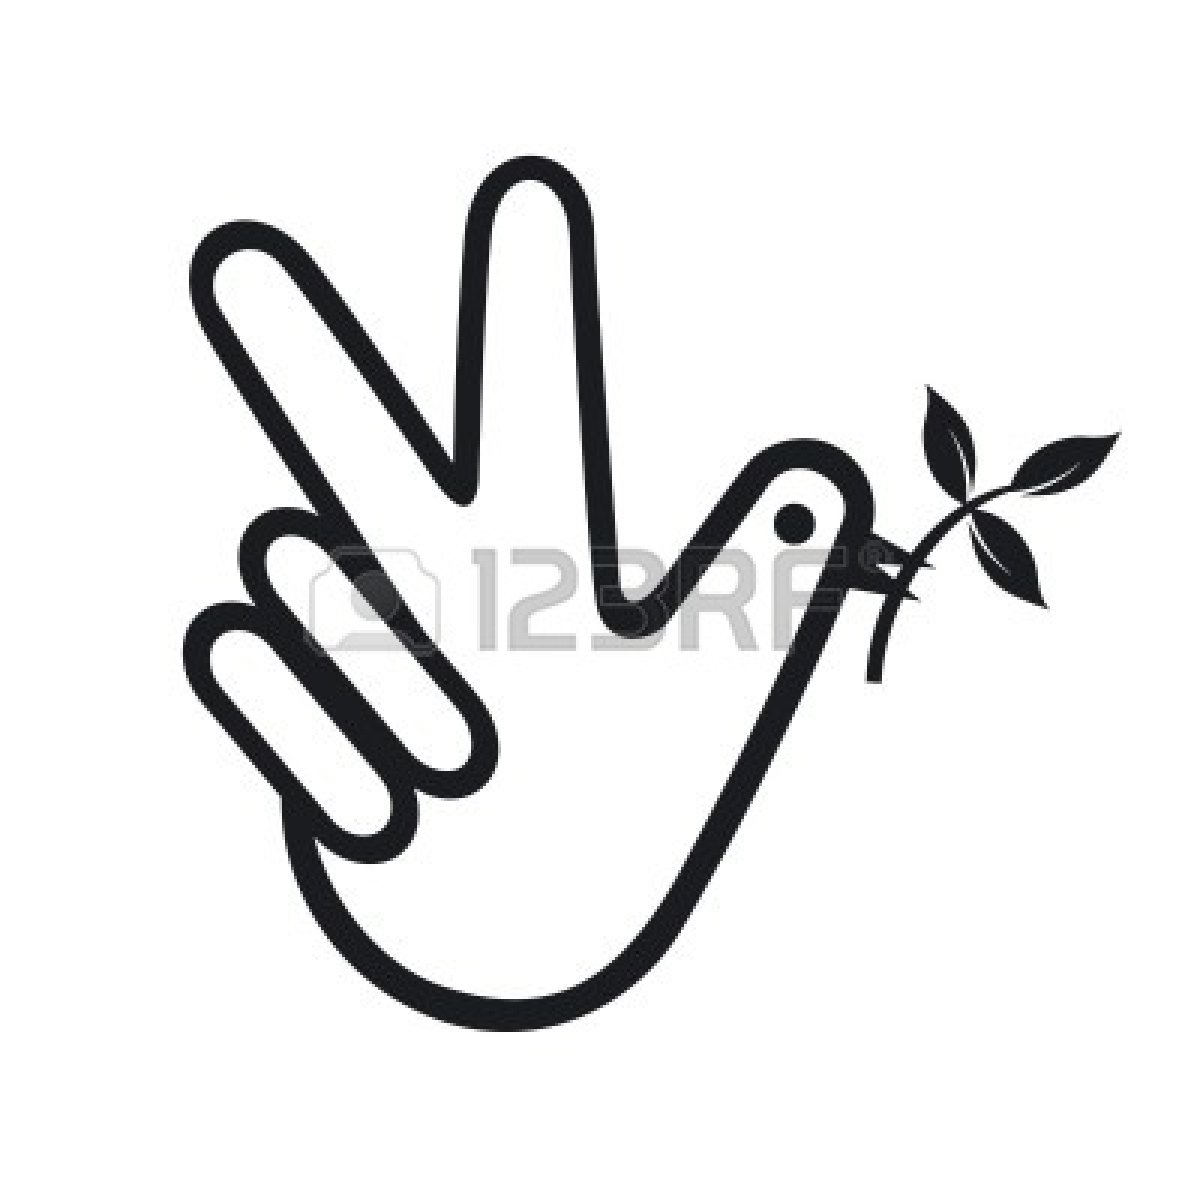 Drawn peace sign hand clipart Free hand%20peace%20sign%20drawing Images Peace Clipart